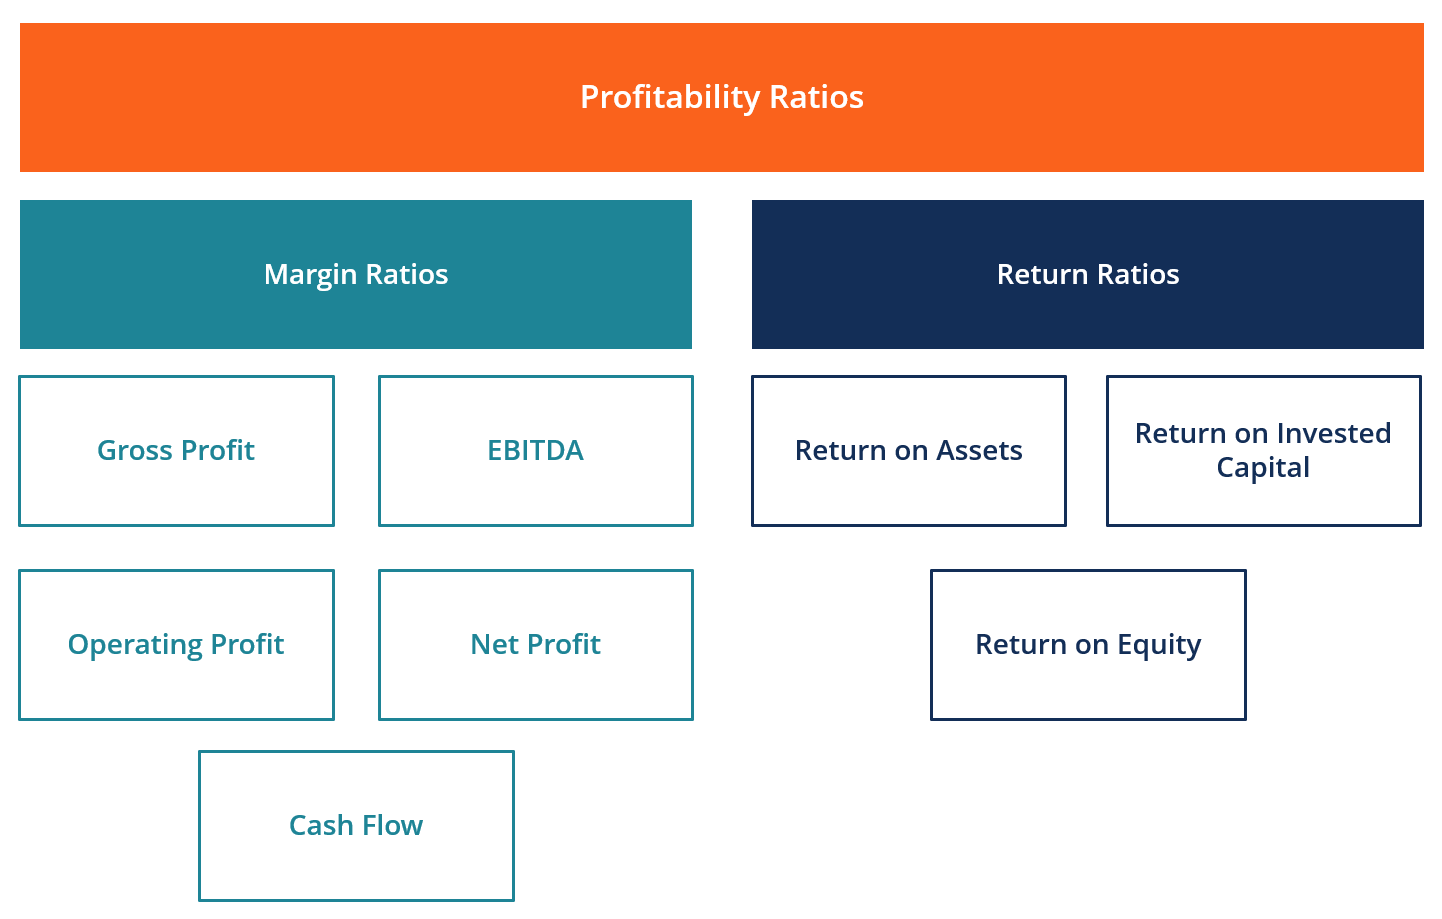 Profitability Ratios Diagram with Examples